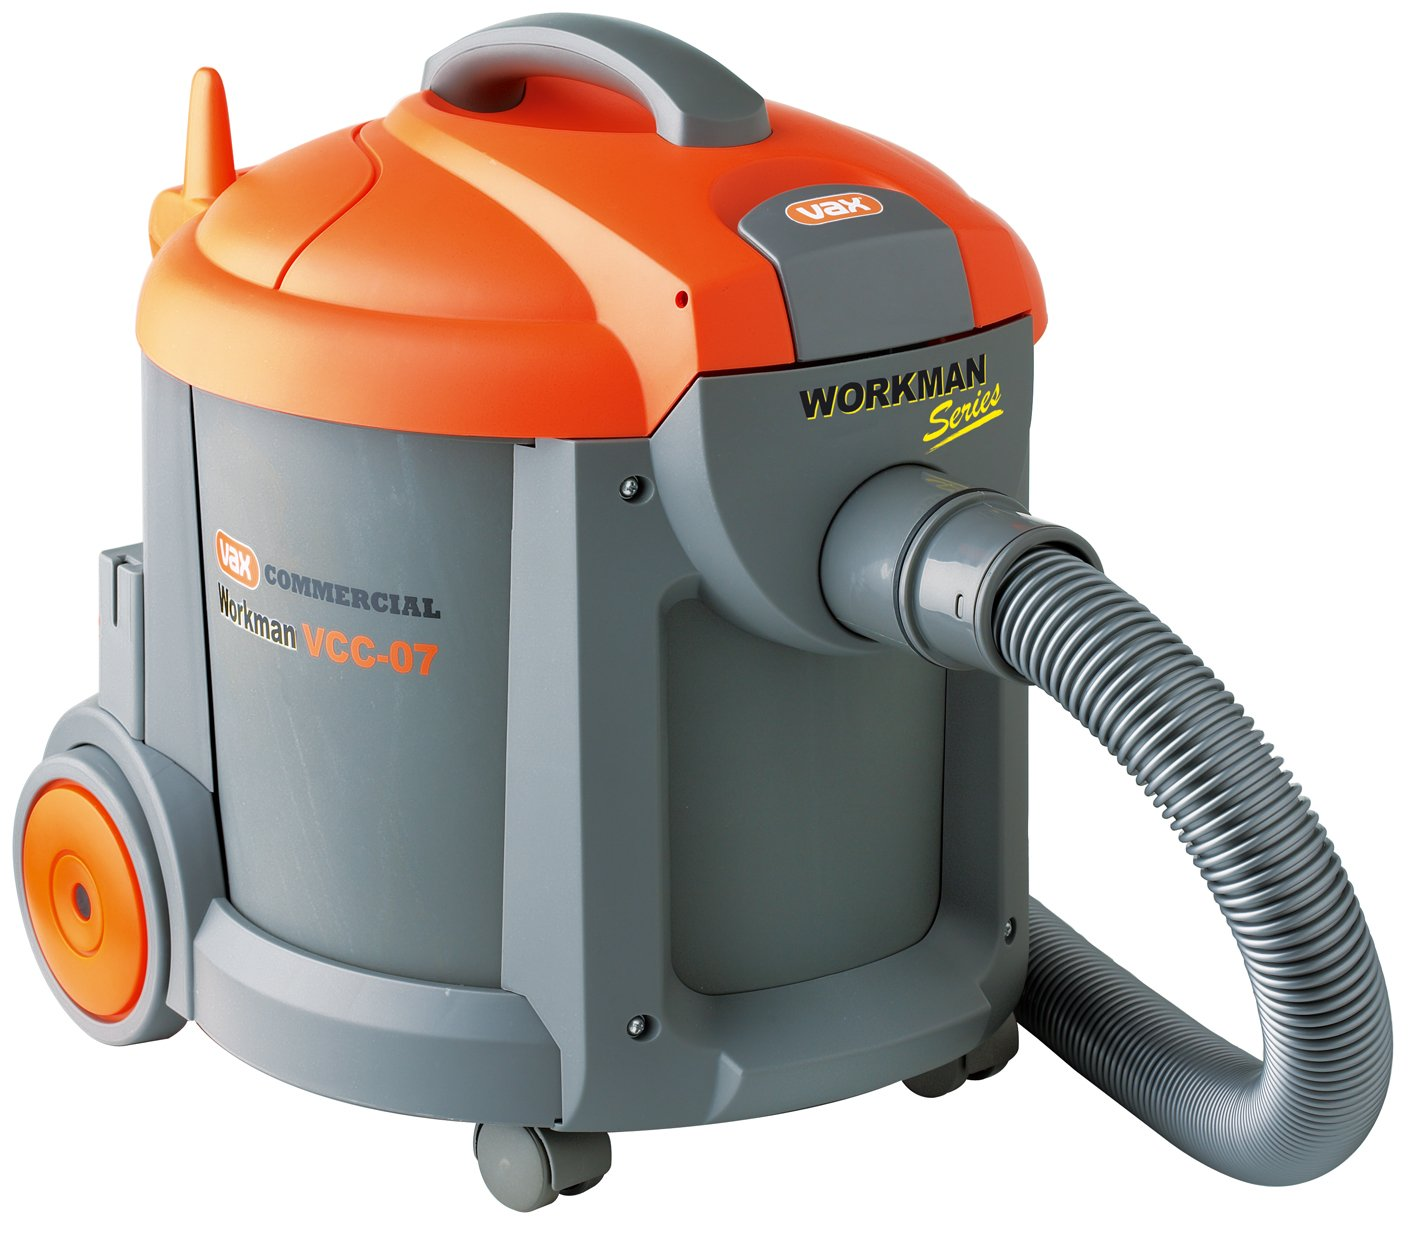 VAX VCC-07 WORKMAN COMMERCIAL VACUUM CLEANER WITH HEPA ...